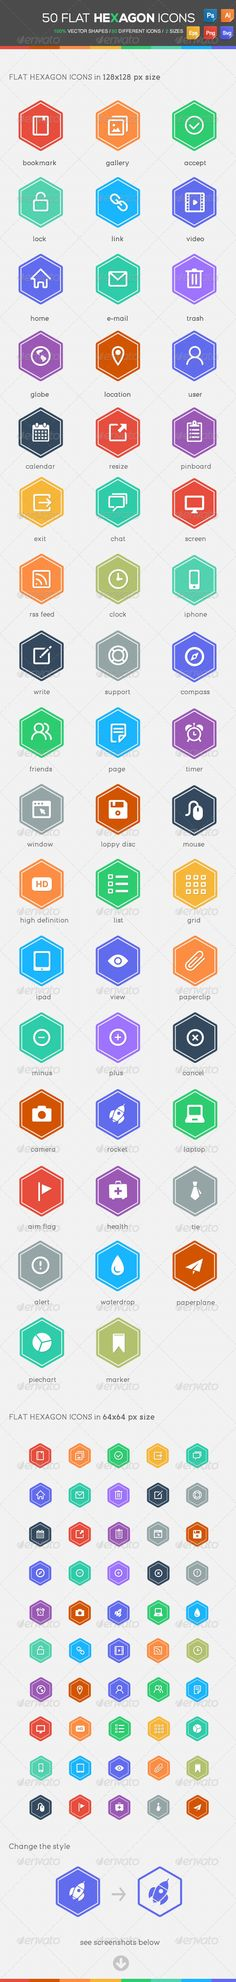 50 Flat Hexagon Icons